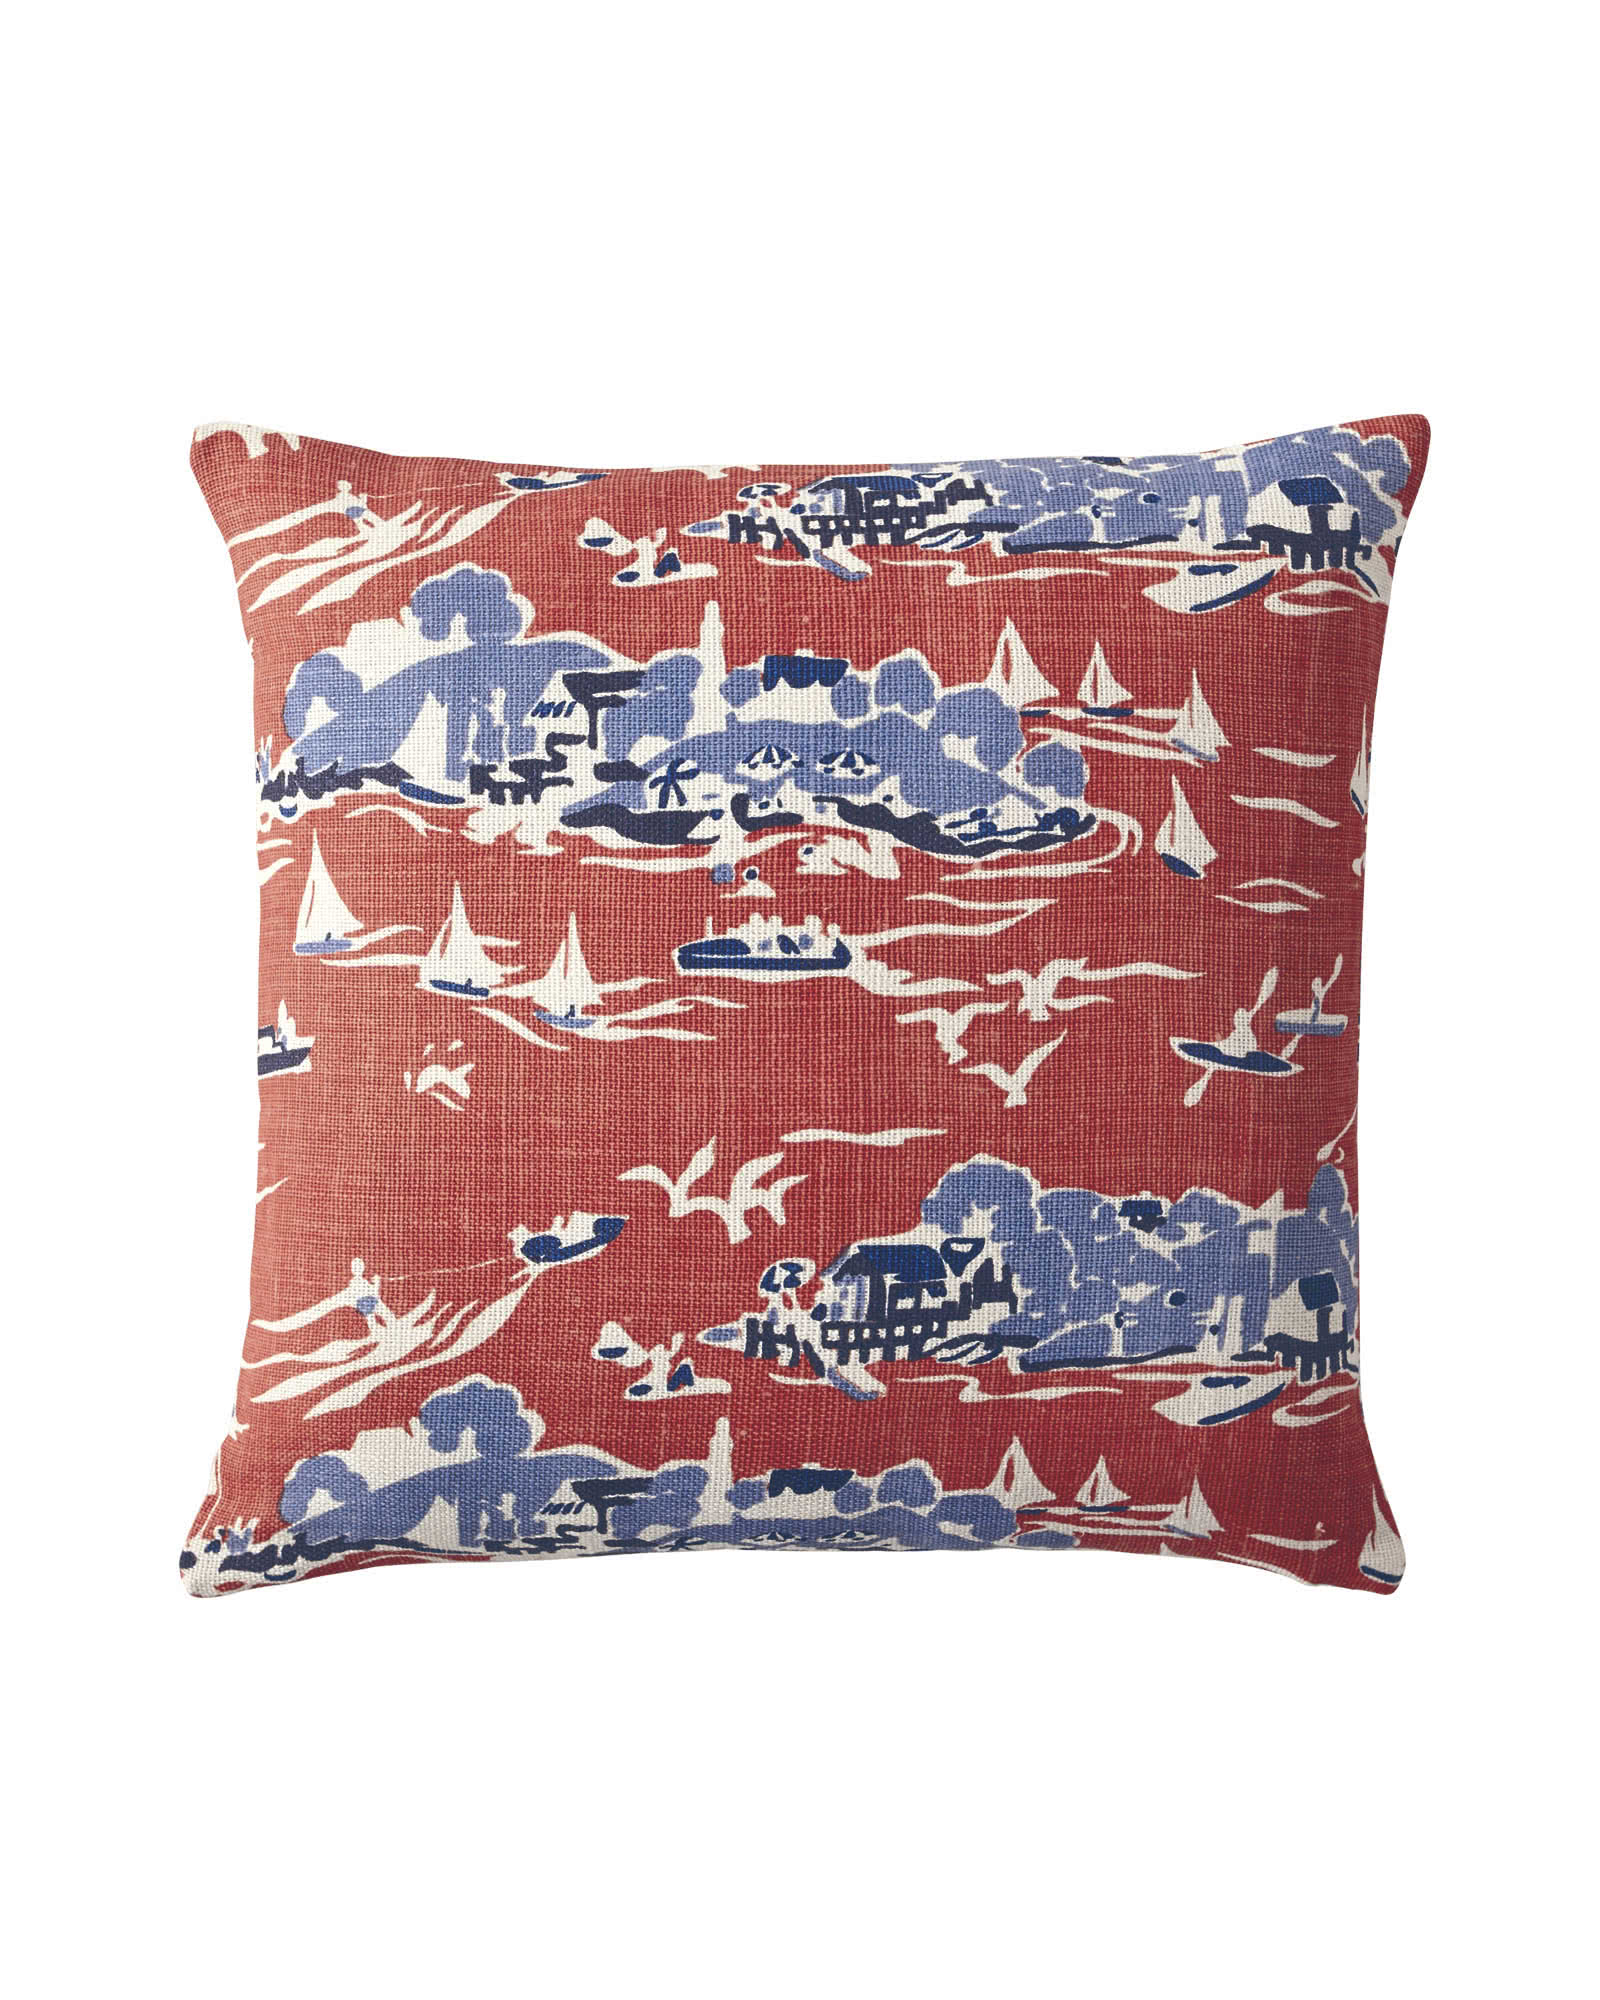 Skylake Toile Pillow Covers, Tomato Red